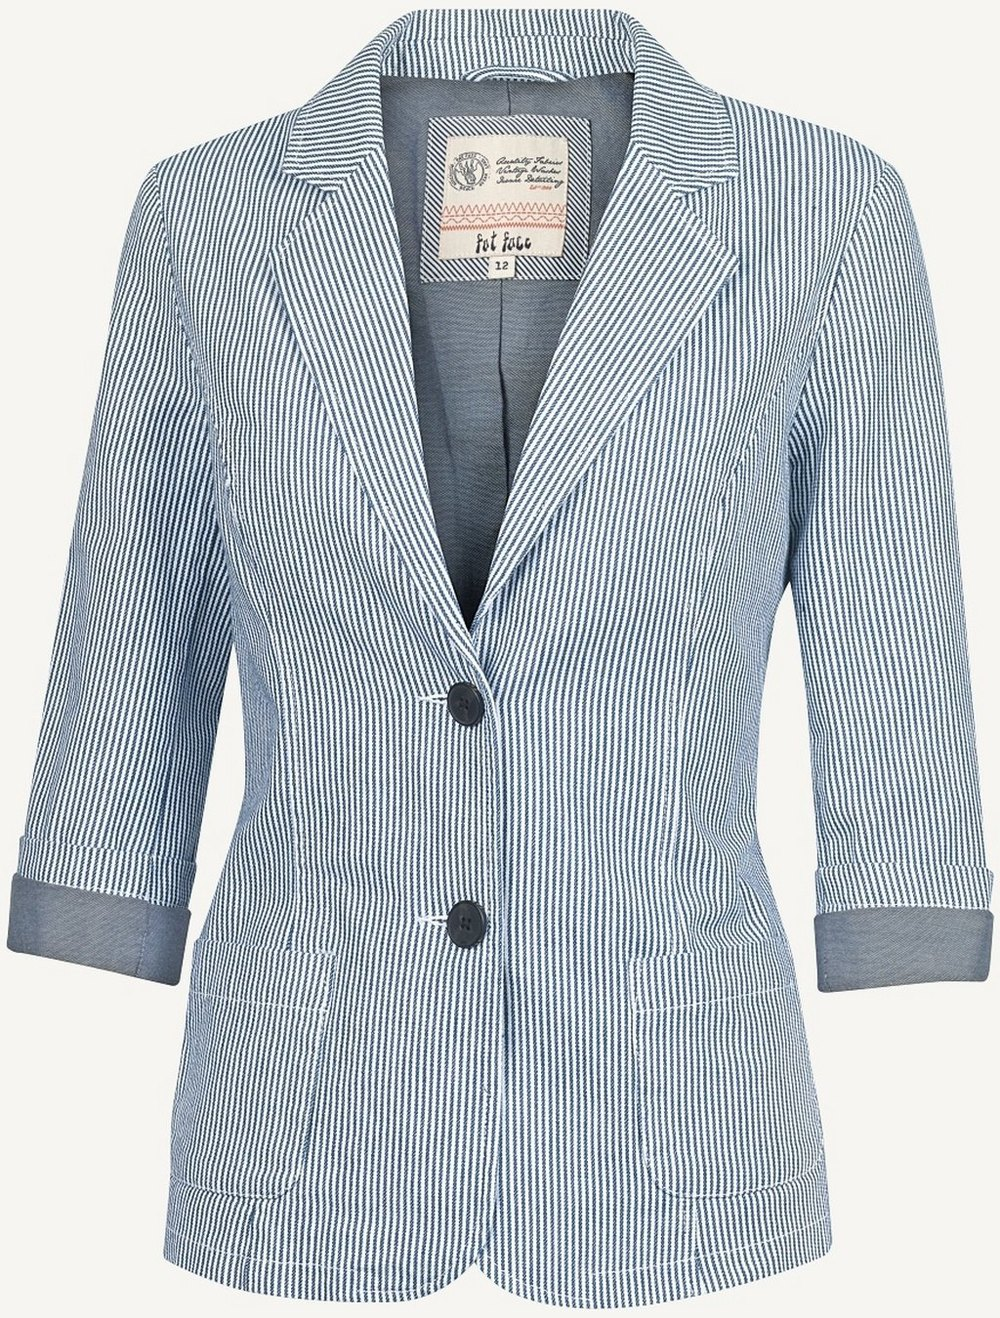 Fat Face, Striped Blazer £72